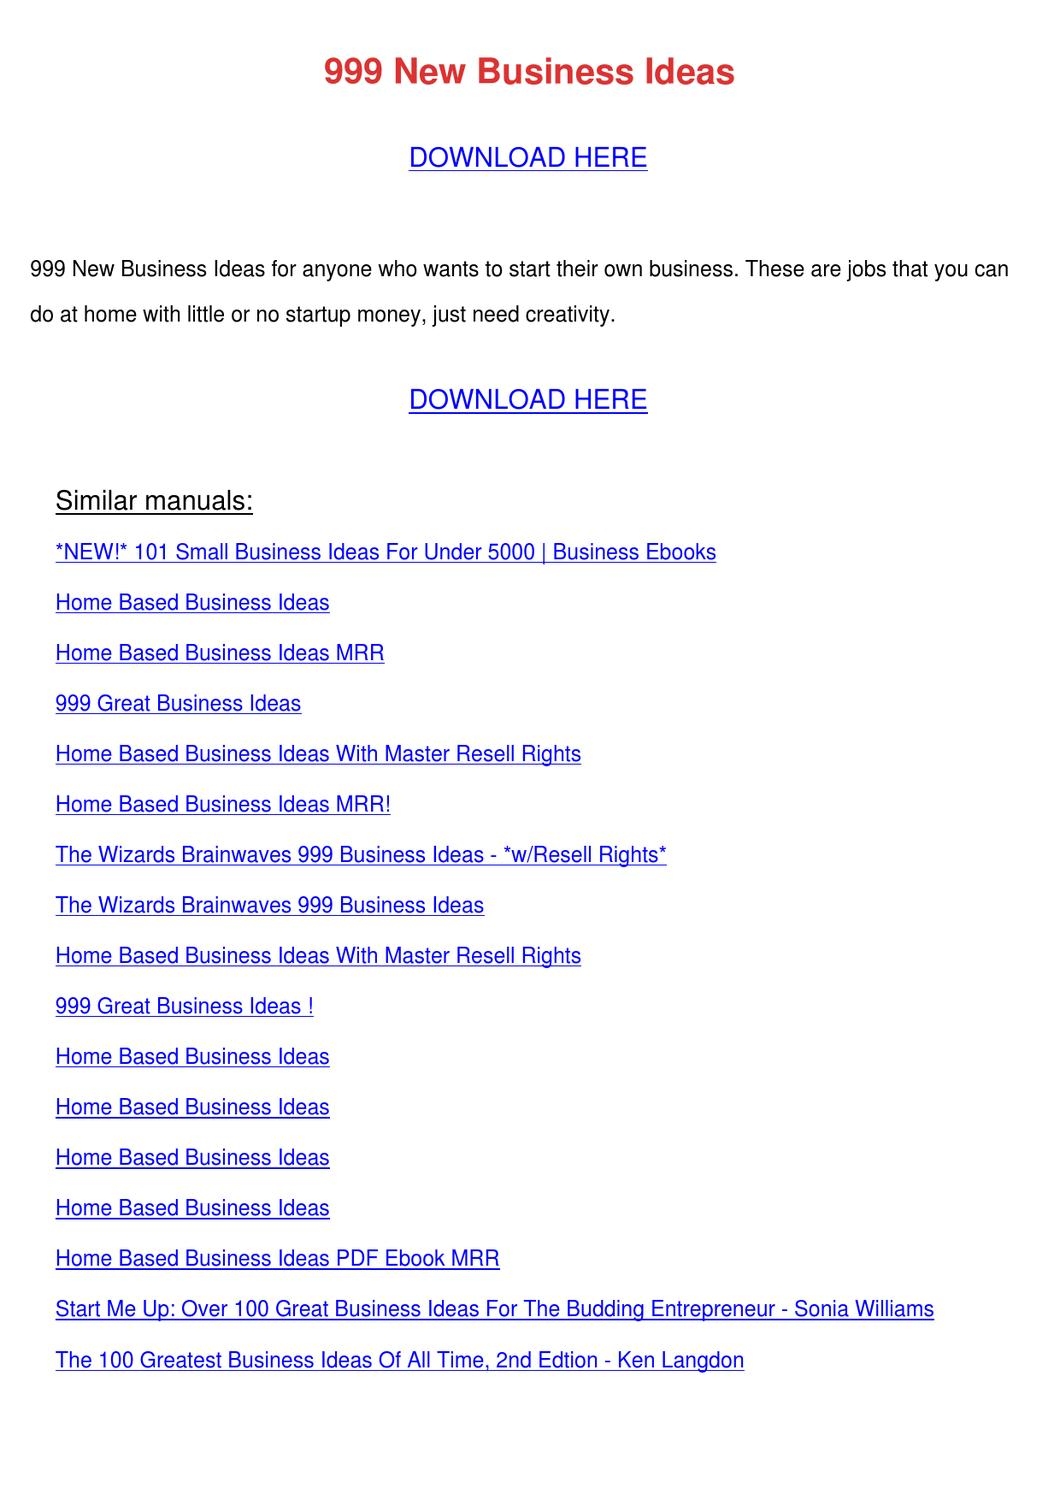 999 New Business Ideas by Charlyn Obst - issuu